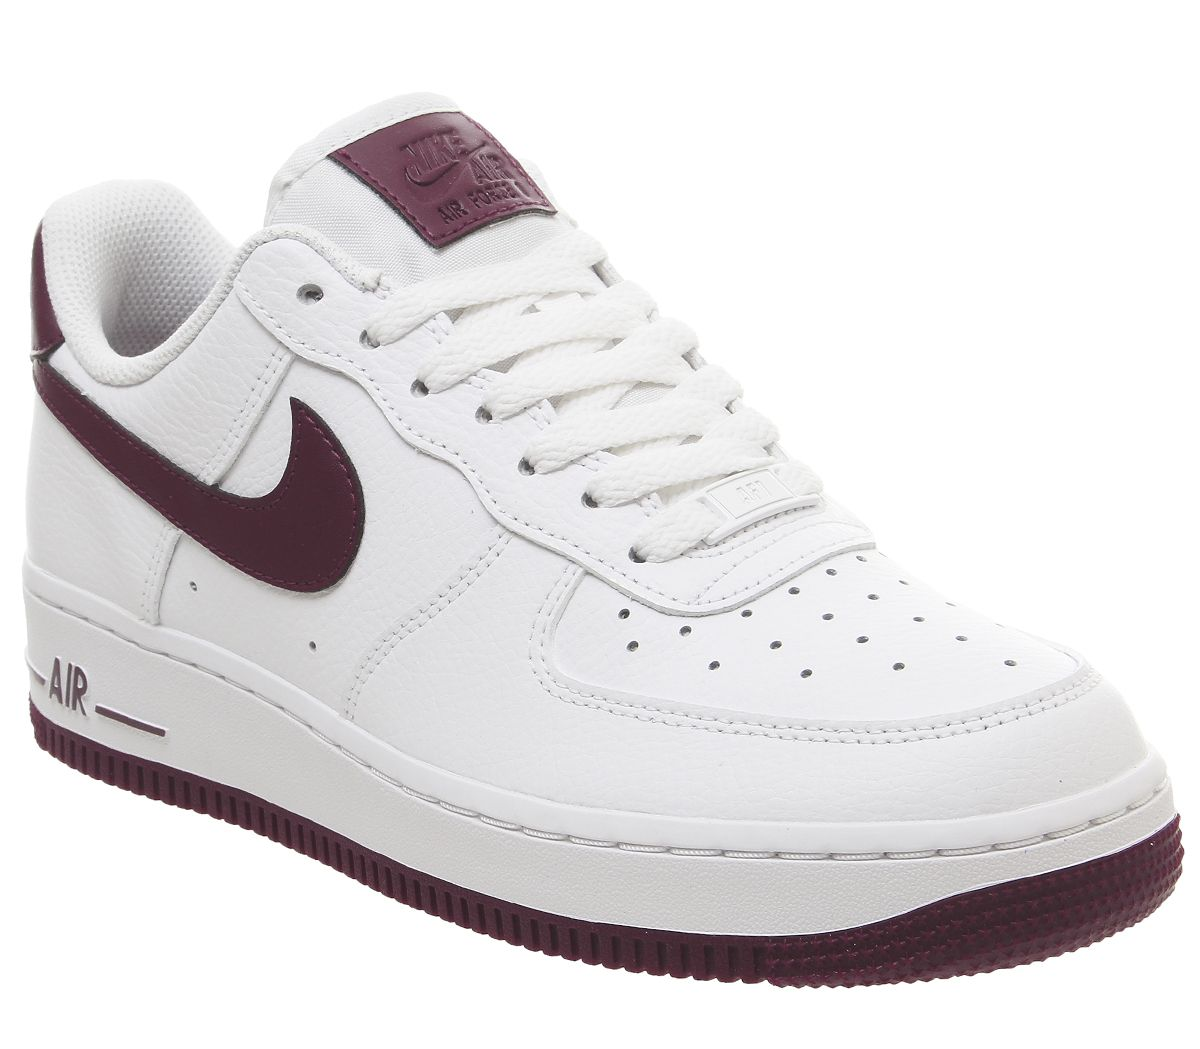 low priced d2617 6e378 Nike Air Force 1 07 Trainers White Bordeaux - Hers trainers